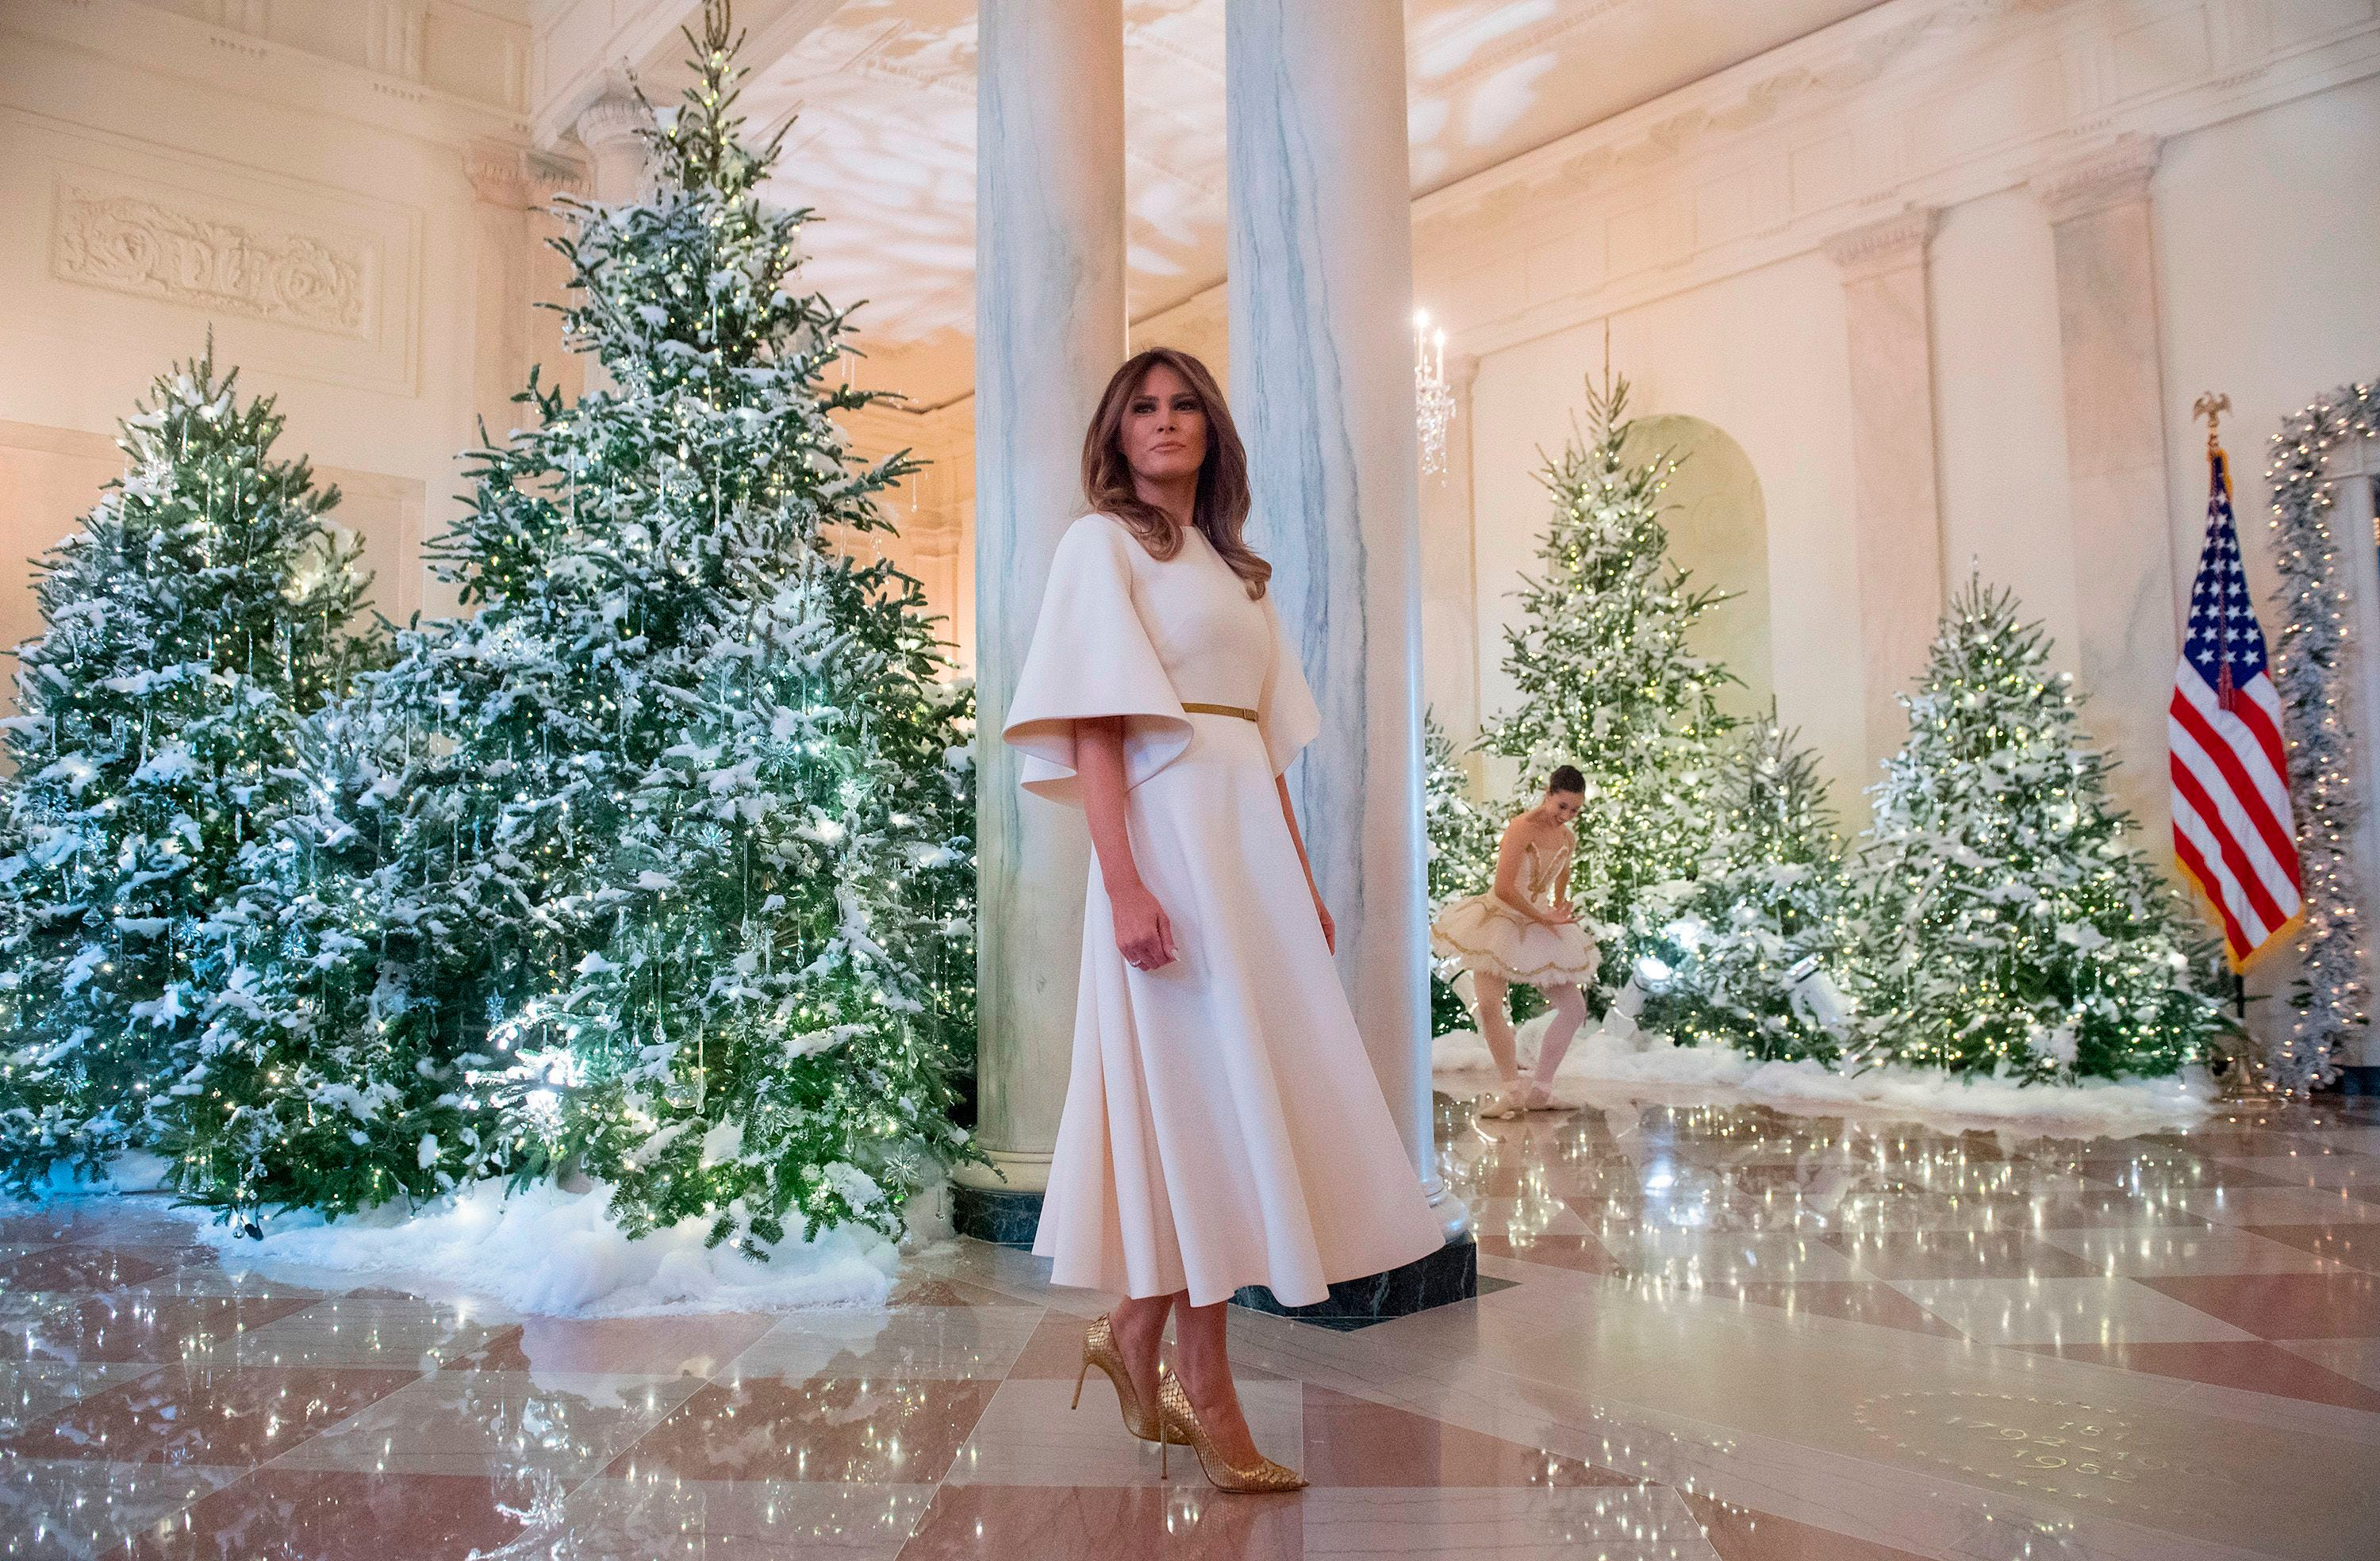 Trump Christmas Picture 2020 Melania Trump's Christmas decorating curse leaks, Twitter reacts